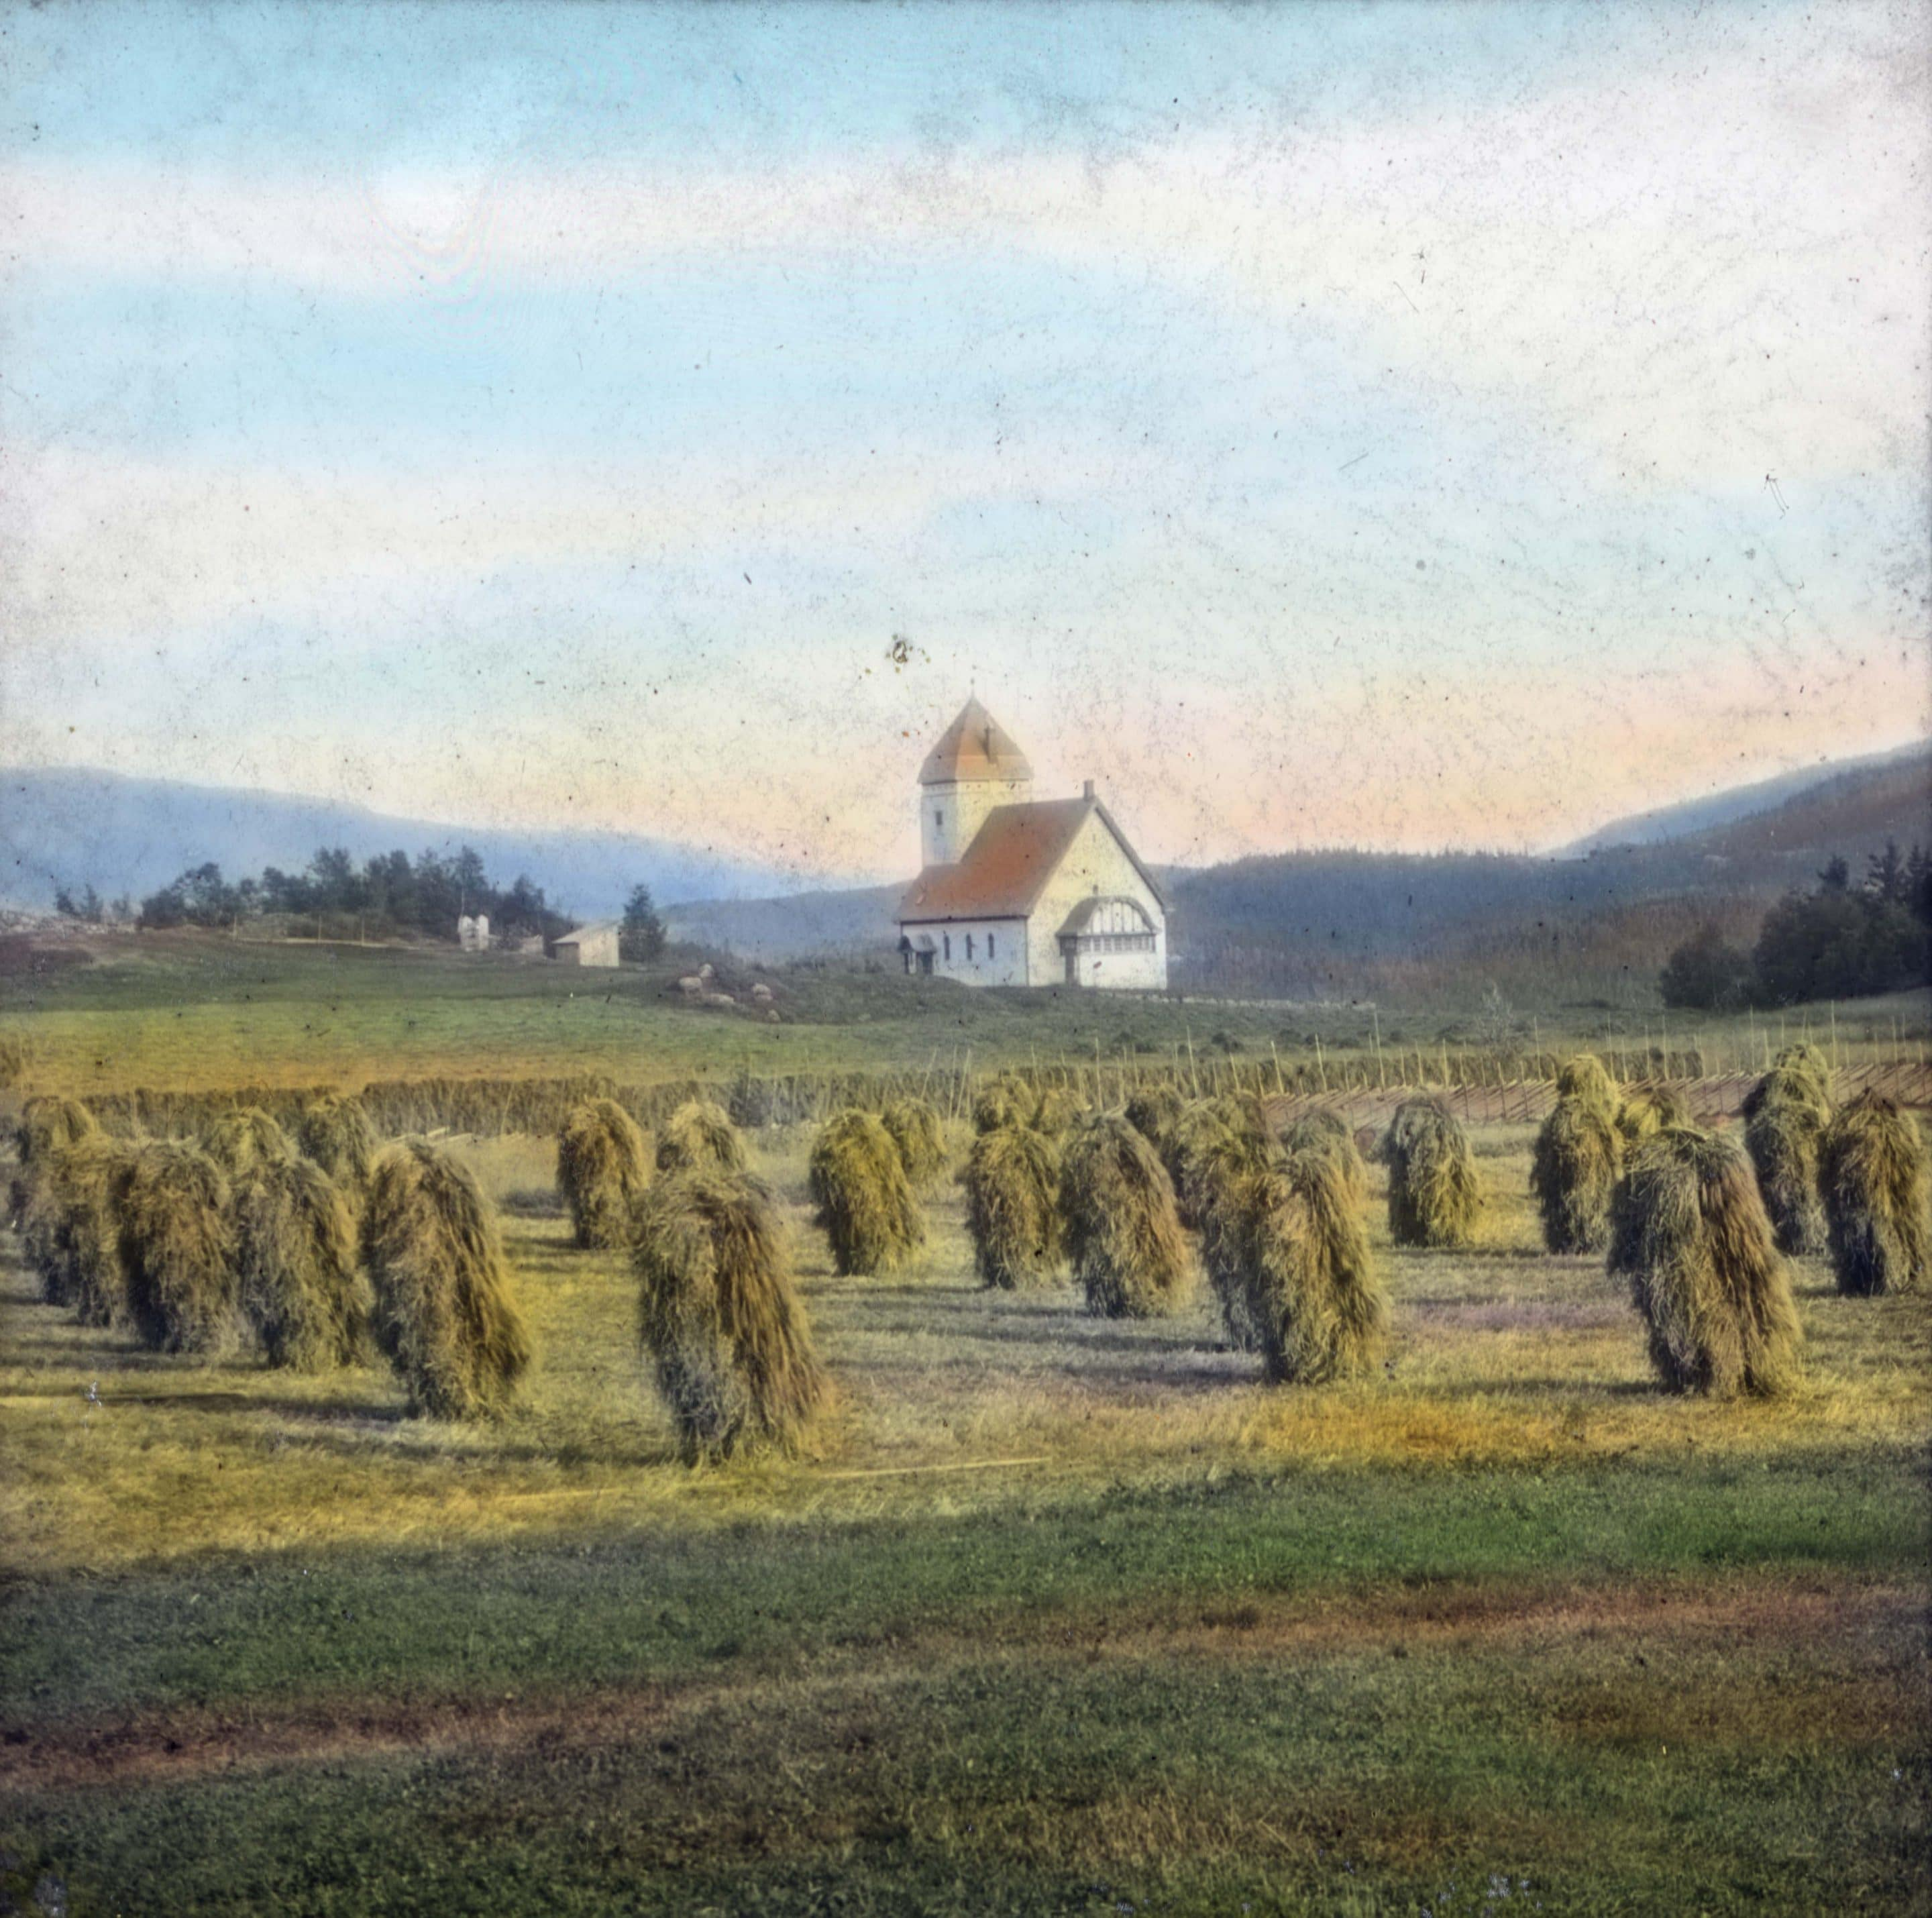 The Lomen church in Vestre Slidre, Valdres, Oppland, Norway. In the foreground, haymaking - hanging the grass on wooden poles to dry. | Photo: Anders Beer Wilse - digitaltmuseum.no DEX_W_00531 - CC BY.